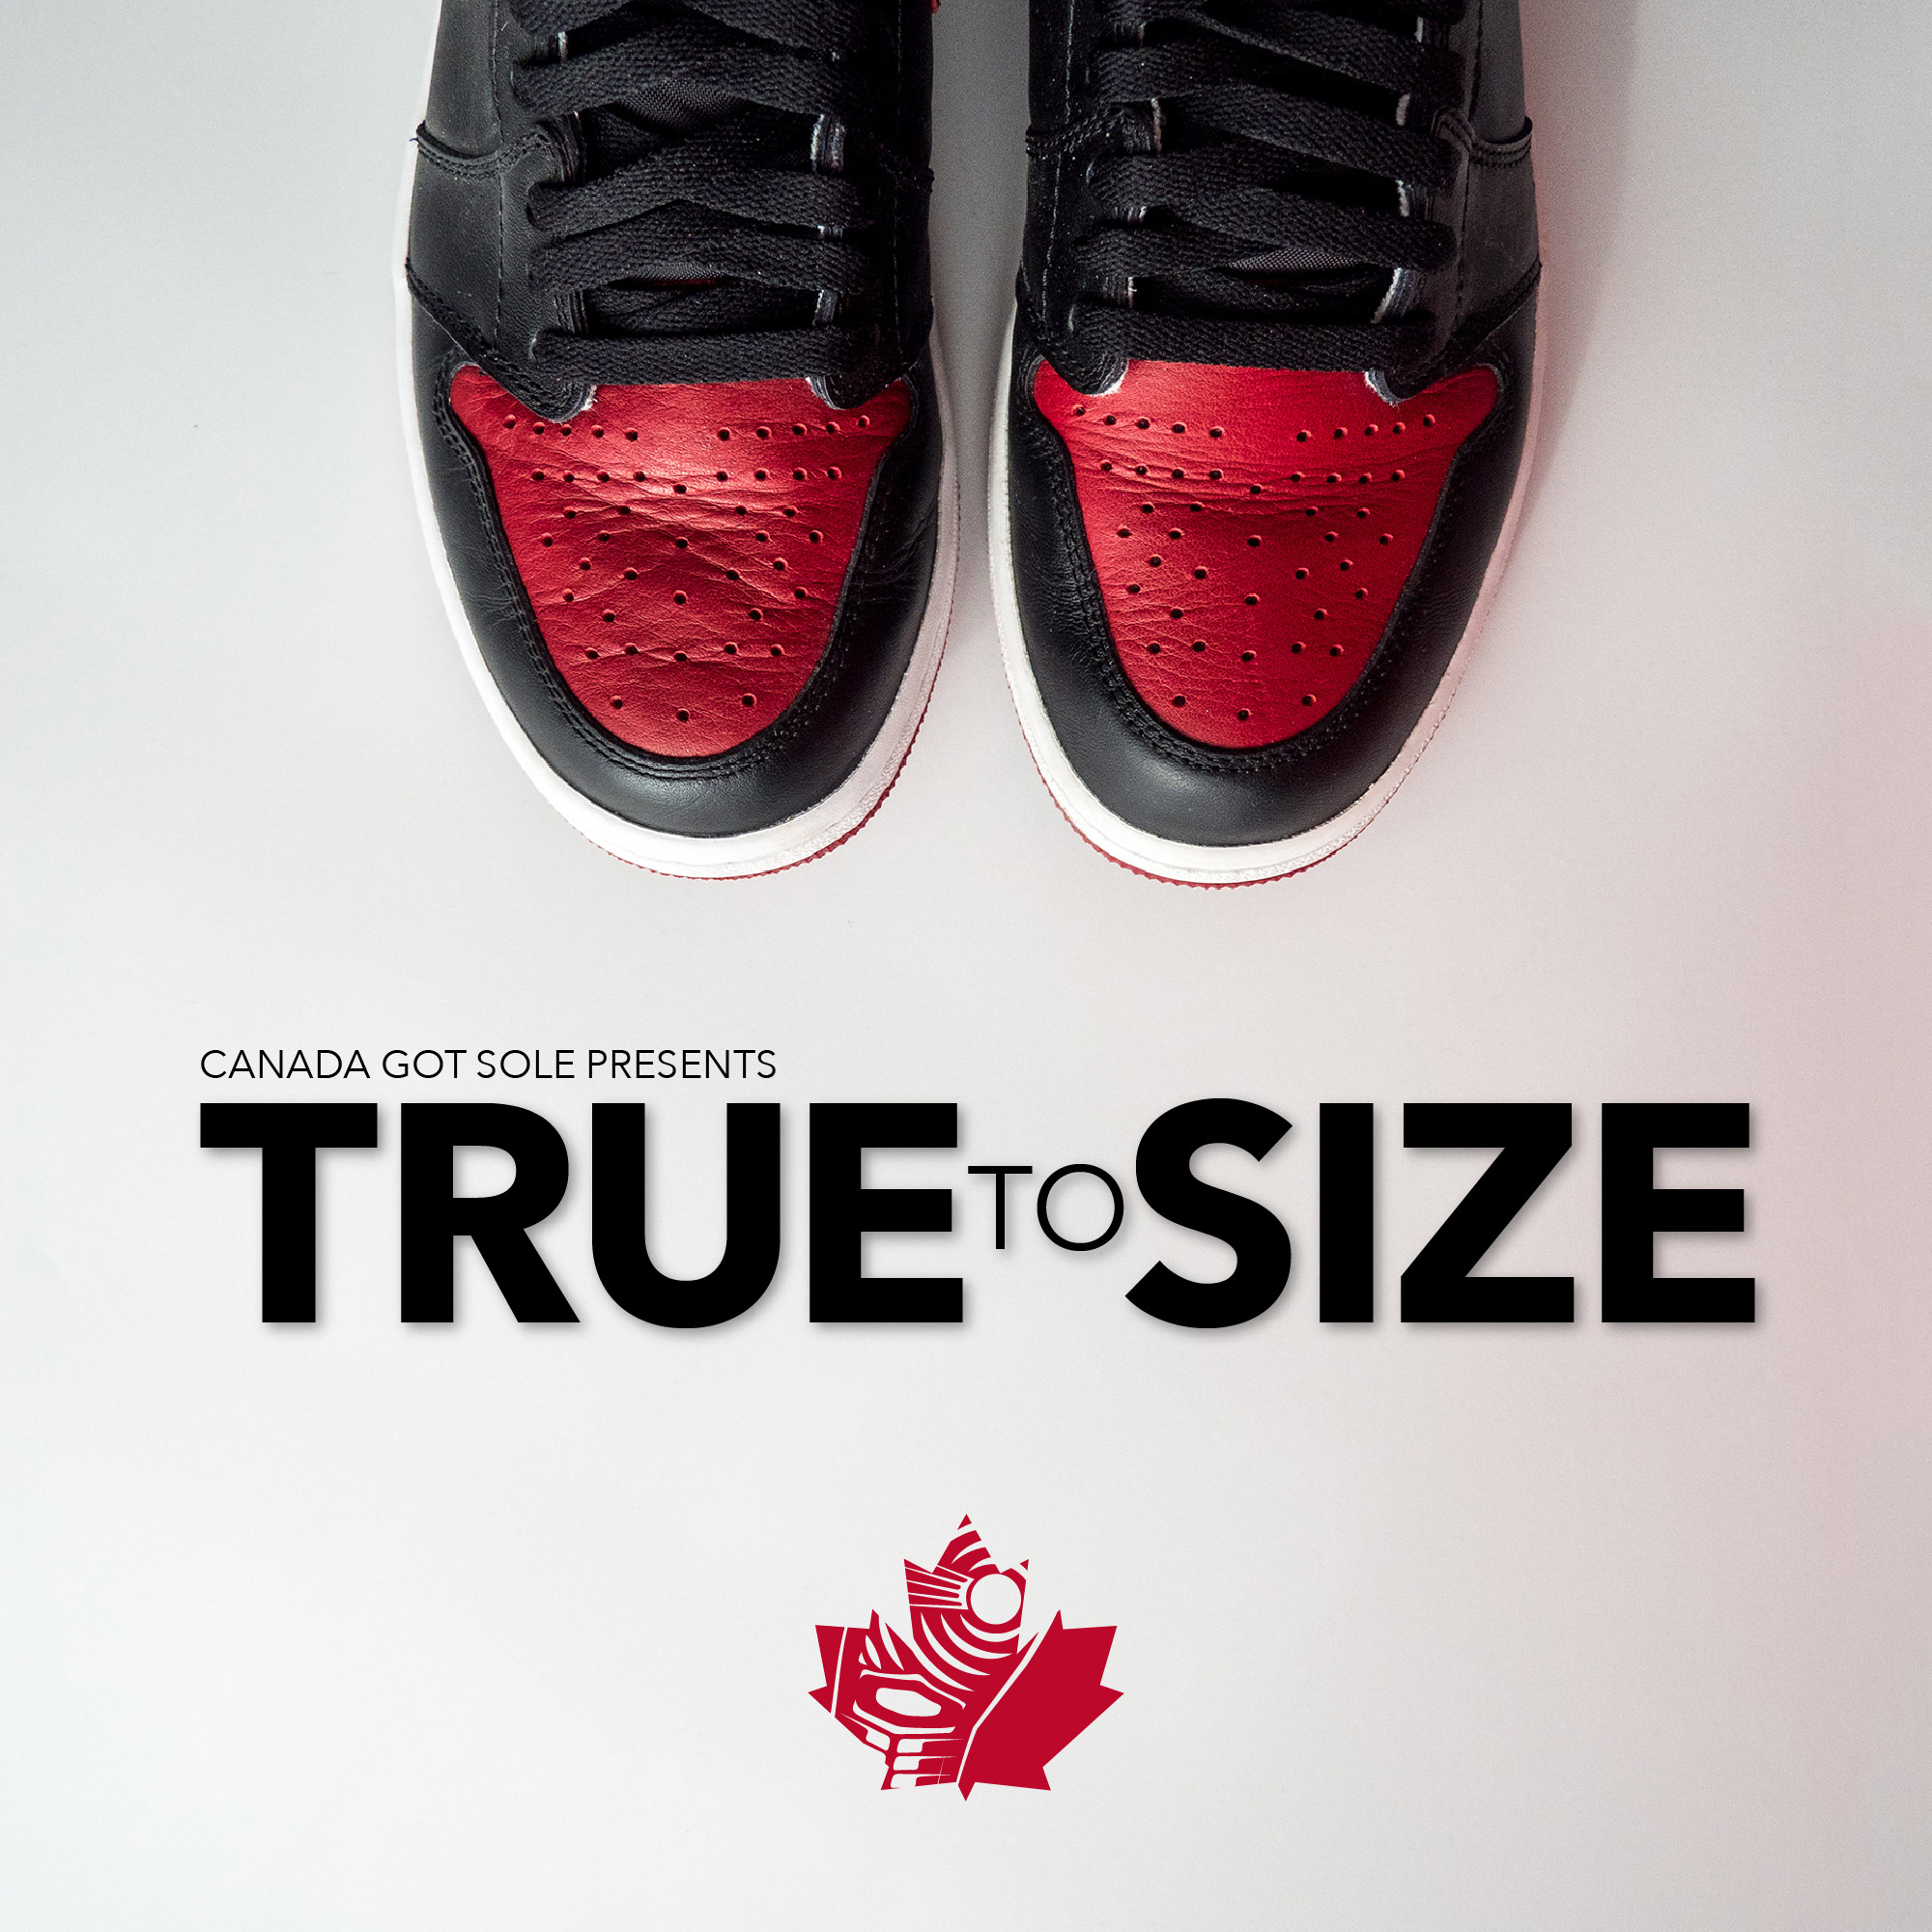 a6e1b582ab7f1 Best Episodes of True to Size